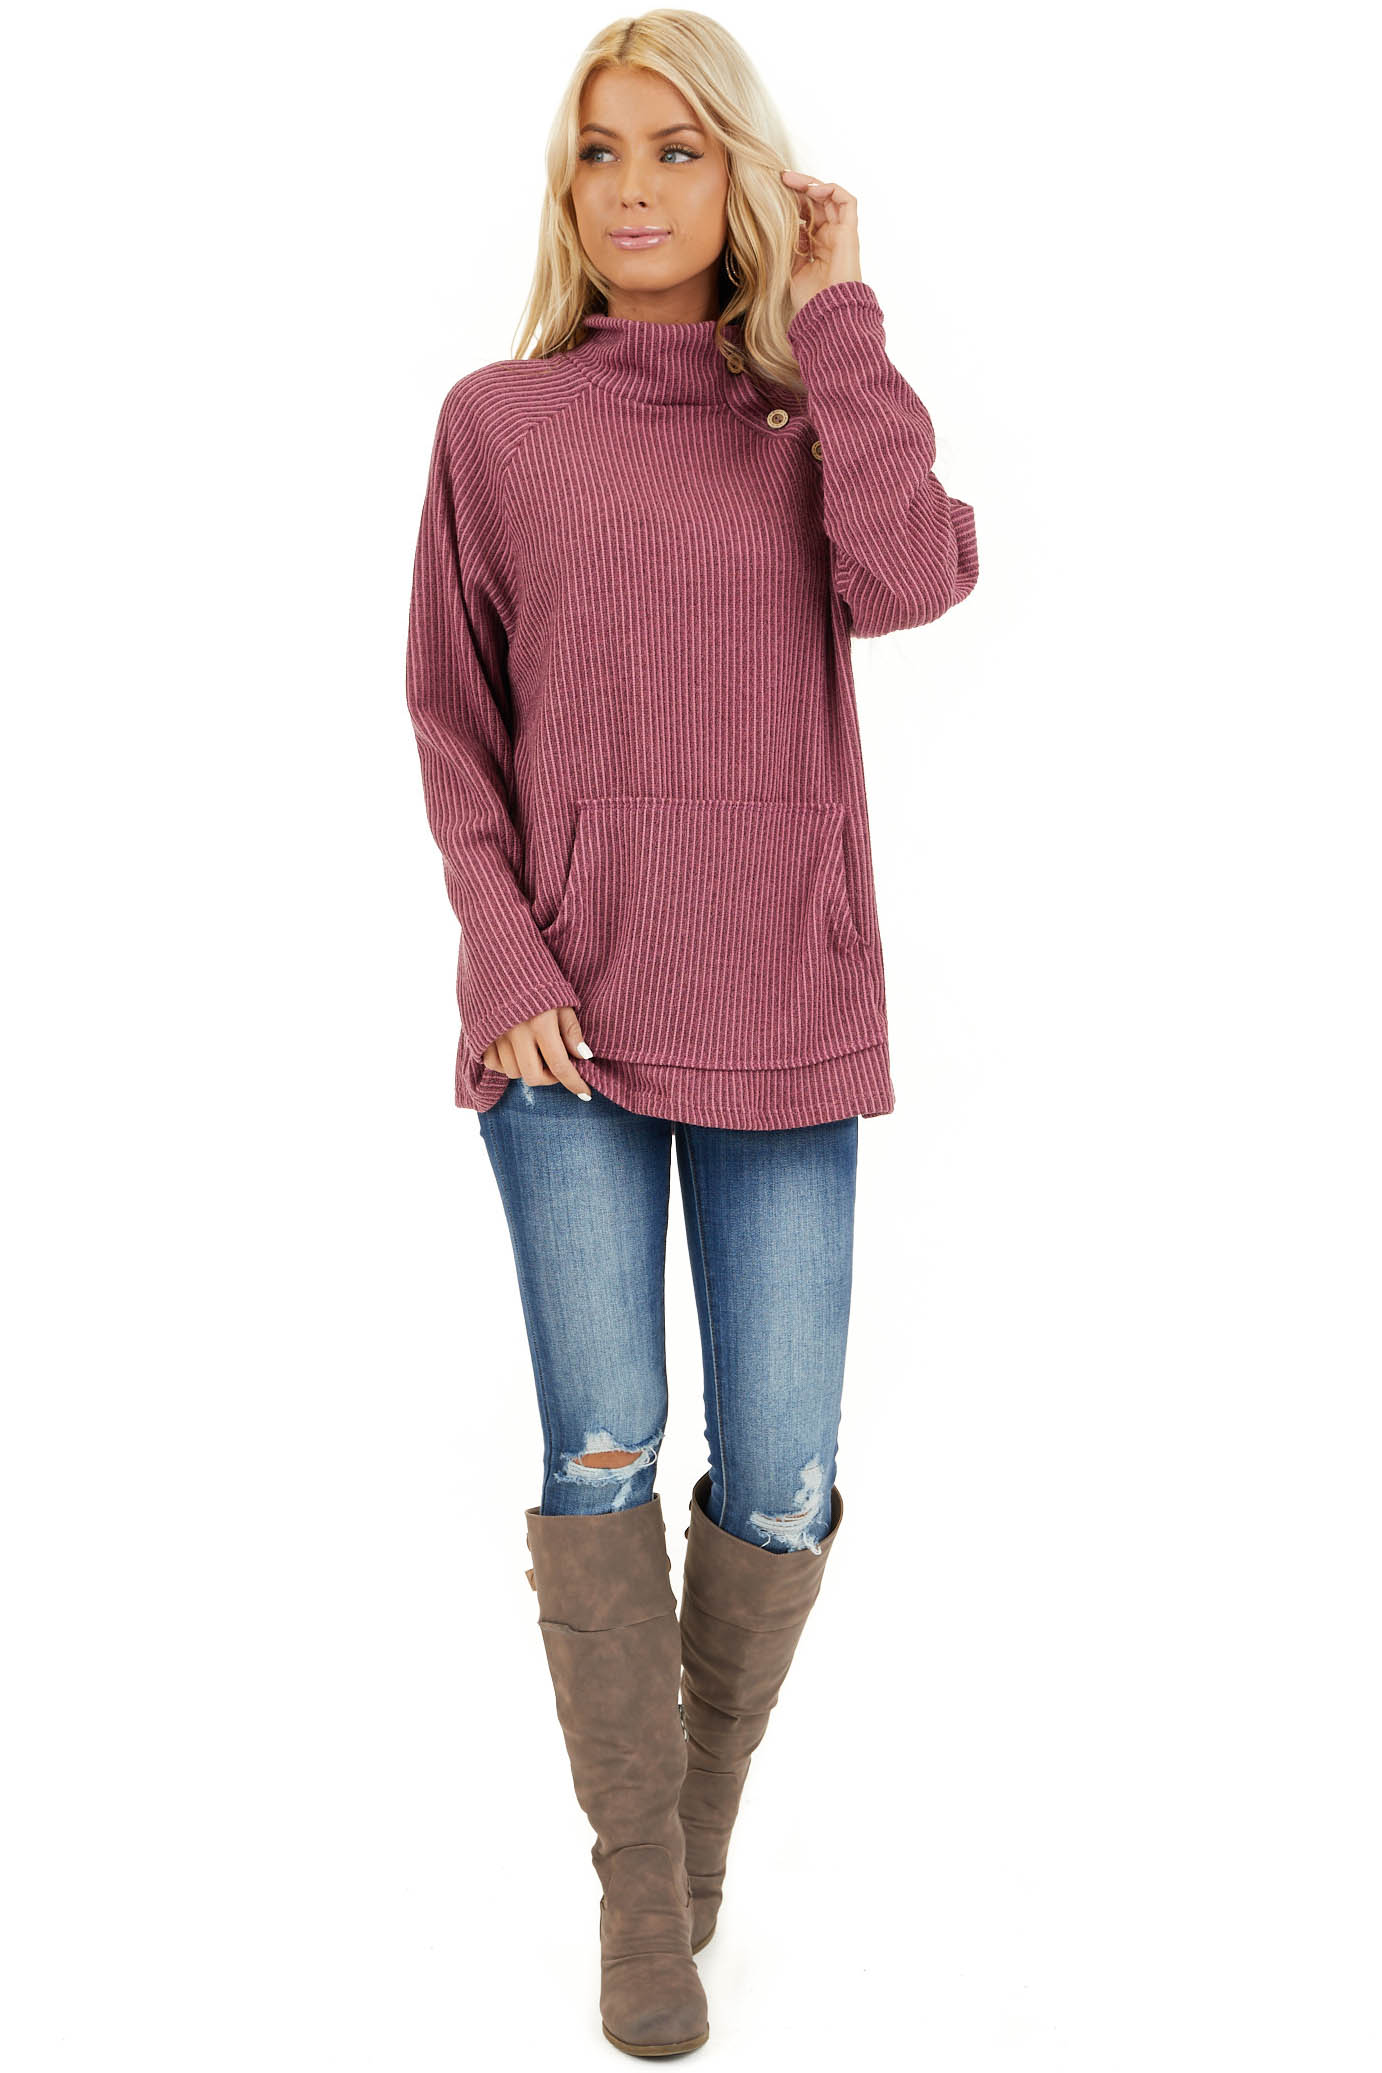 Dusty Mauve Ribbed Knit Mock Neck Top with Button Detail front full body